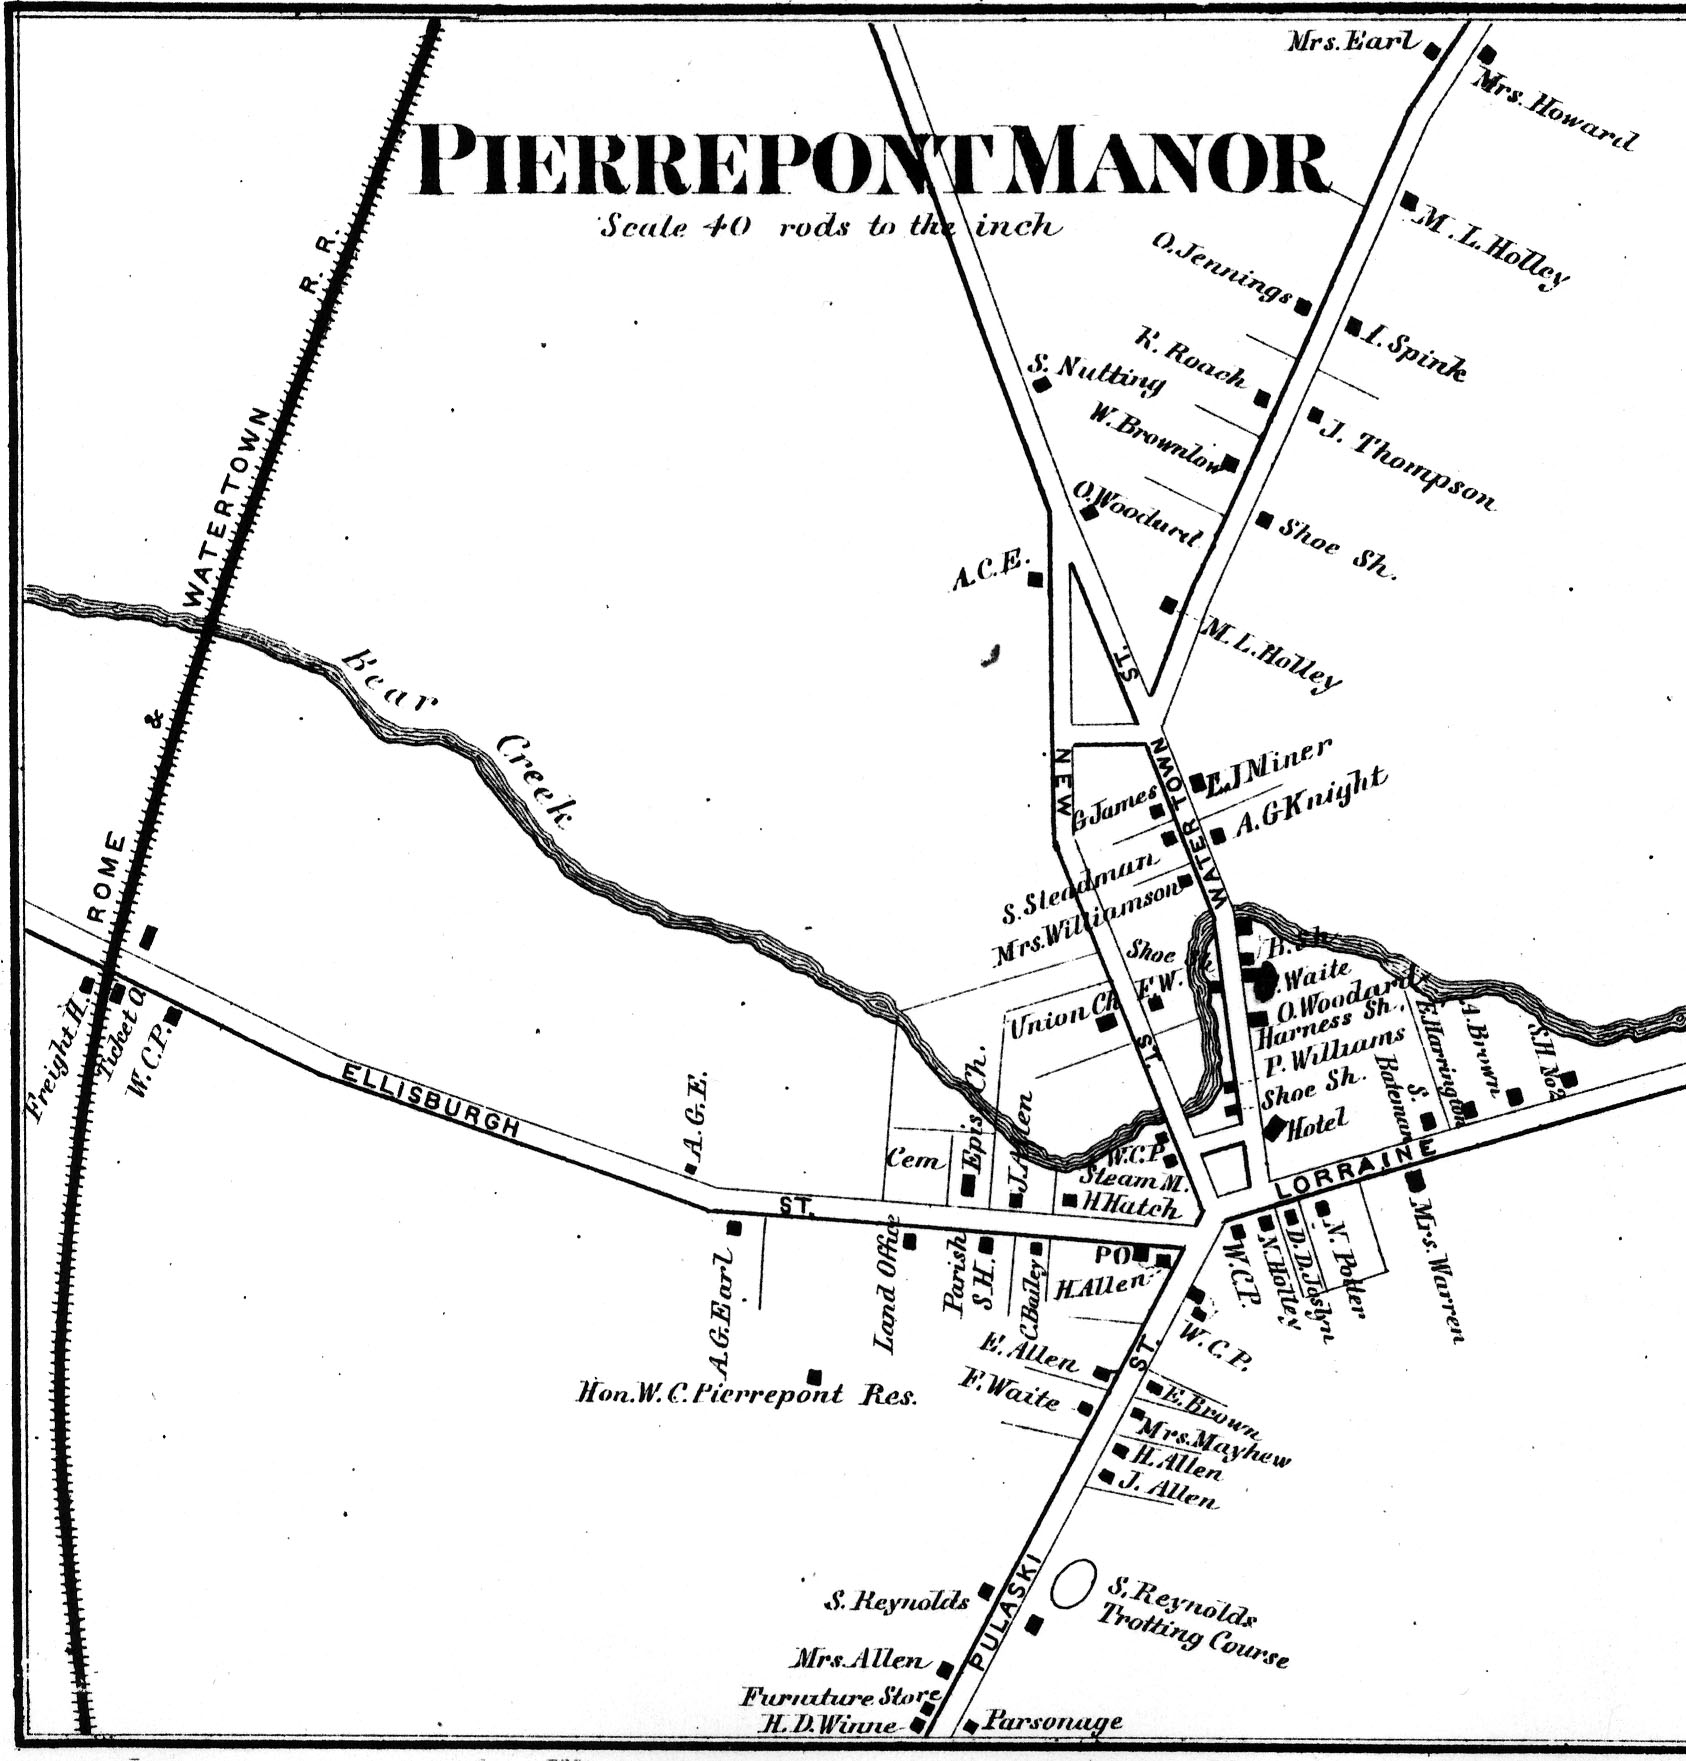 1864 Pierrepont Manor